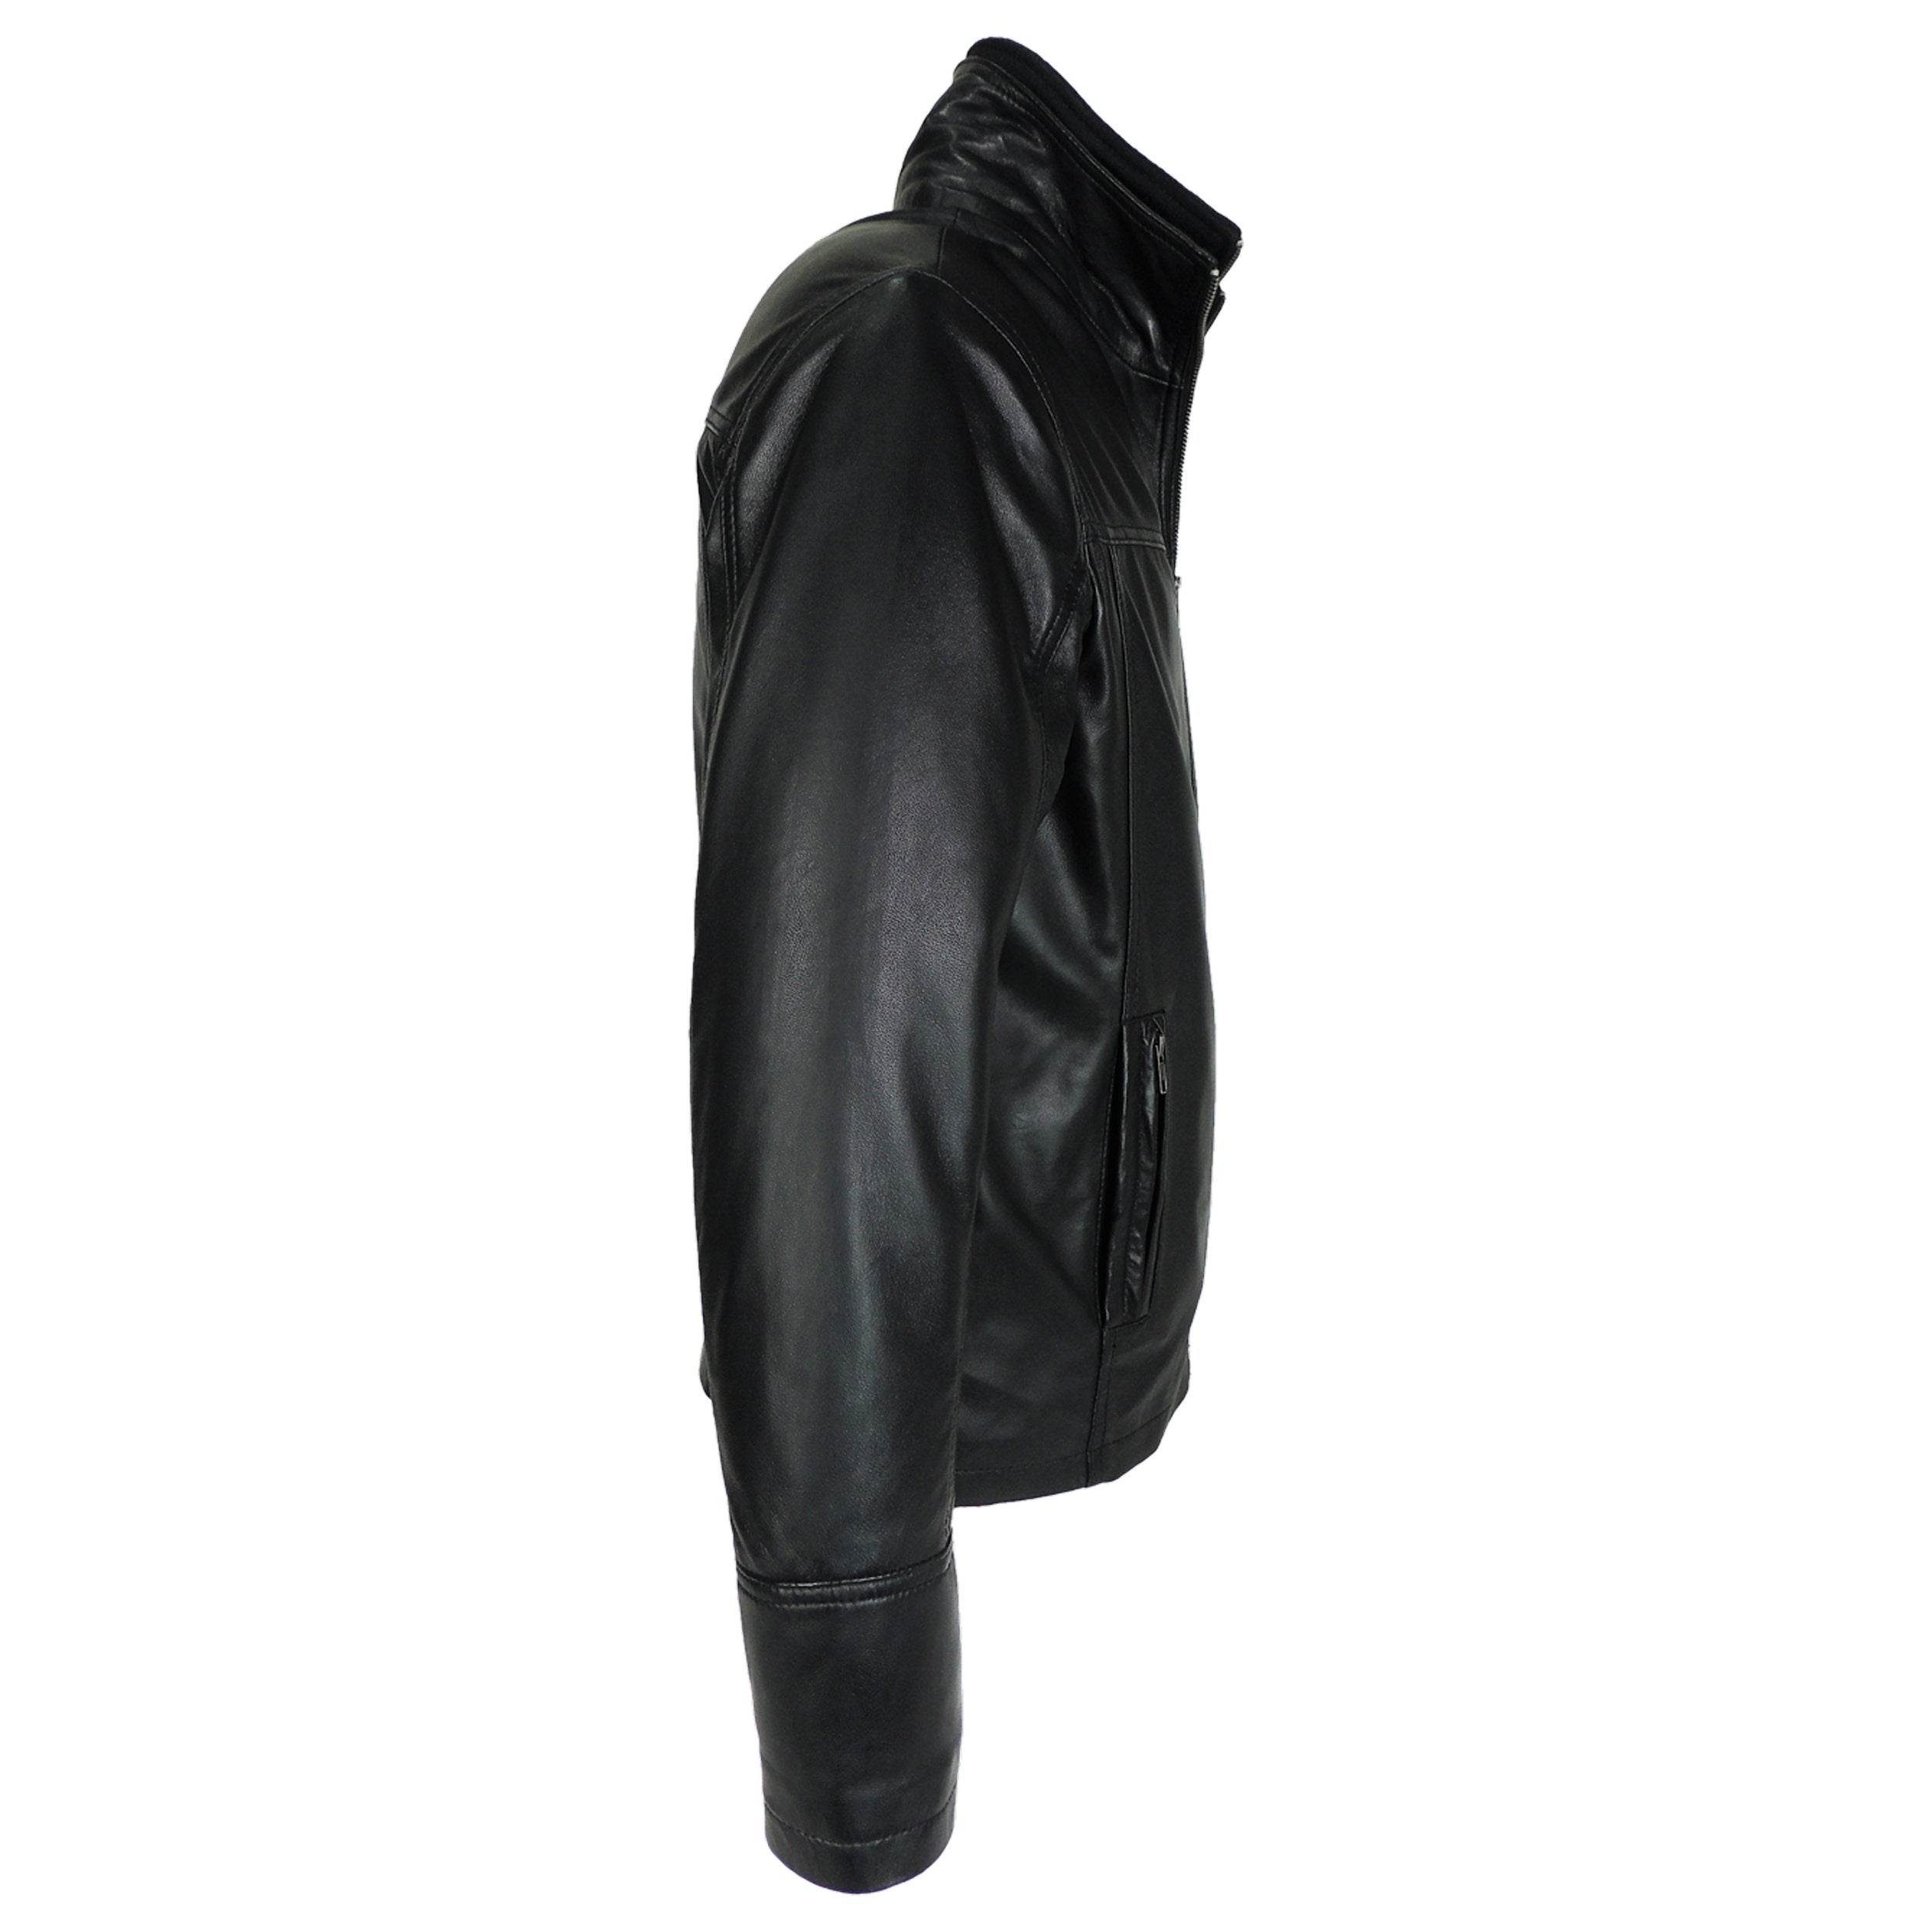 Leather Jacket - Mens Oxford Csaba Leather Jacket - Discounted!